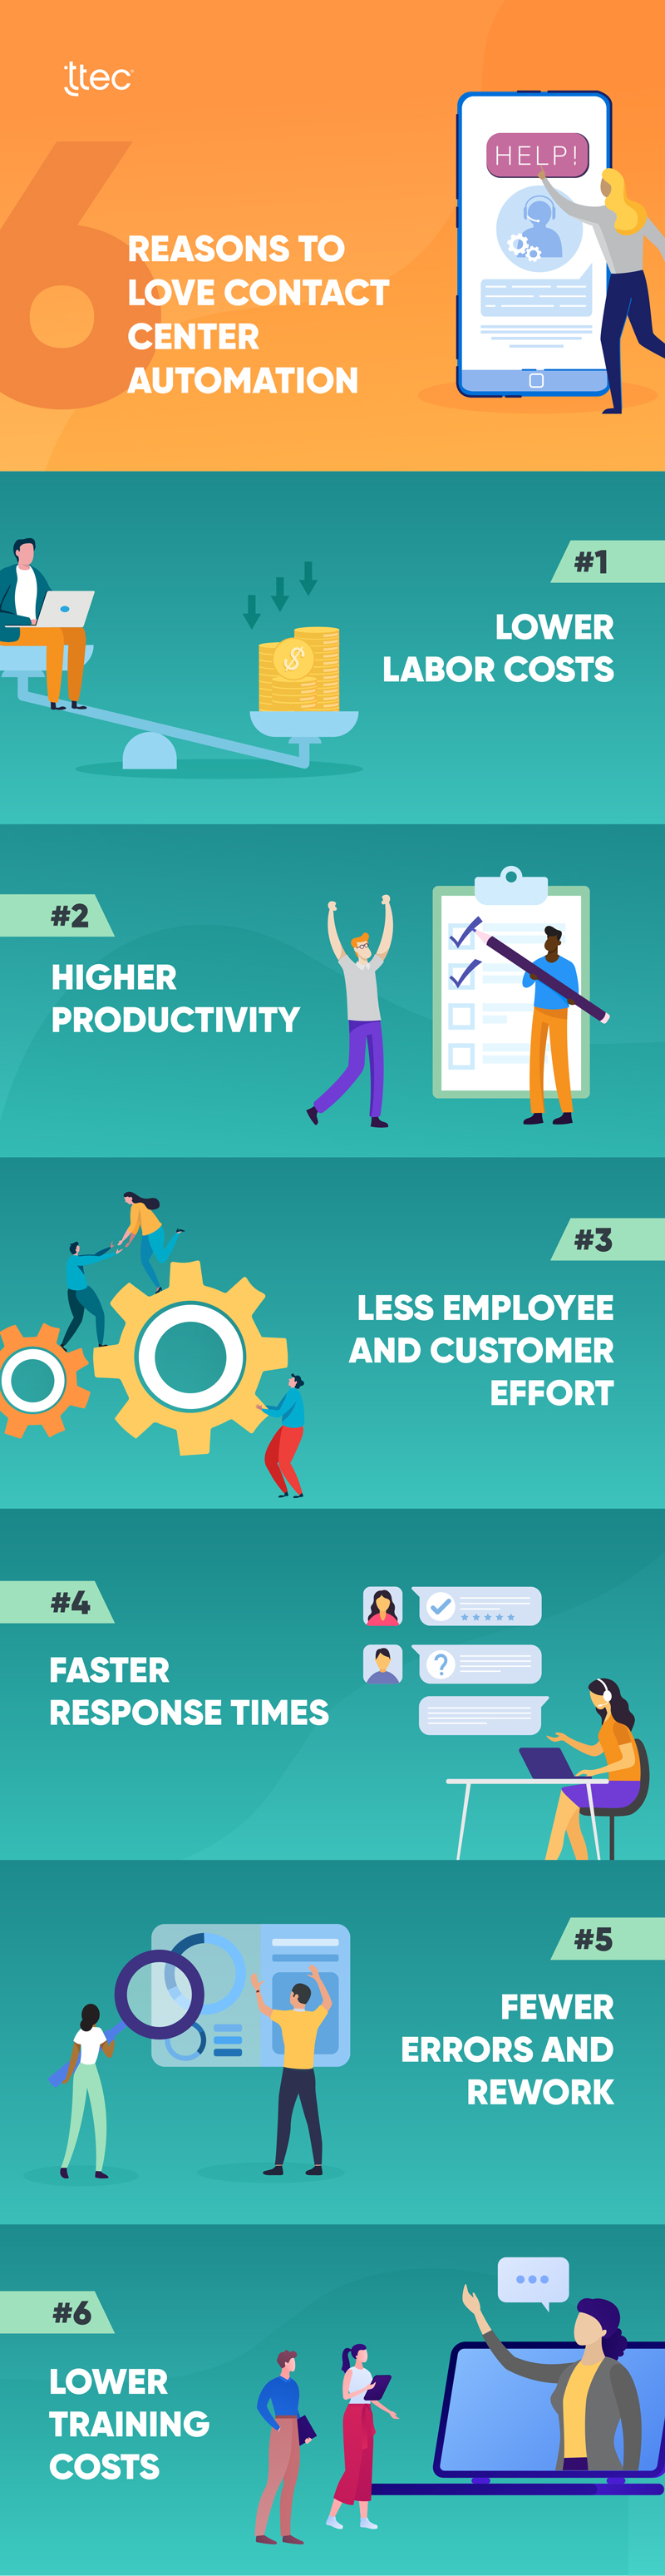 infographic benefits of contact center automation